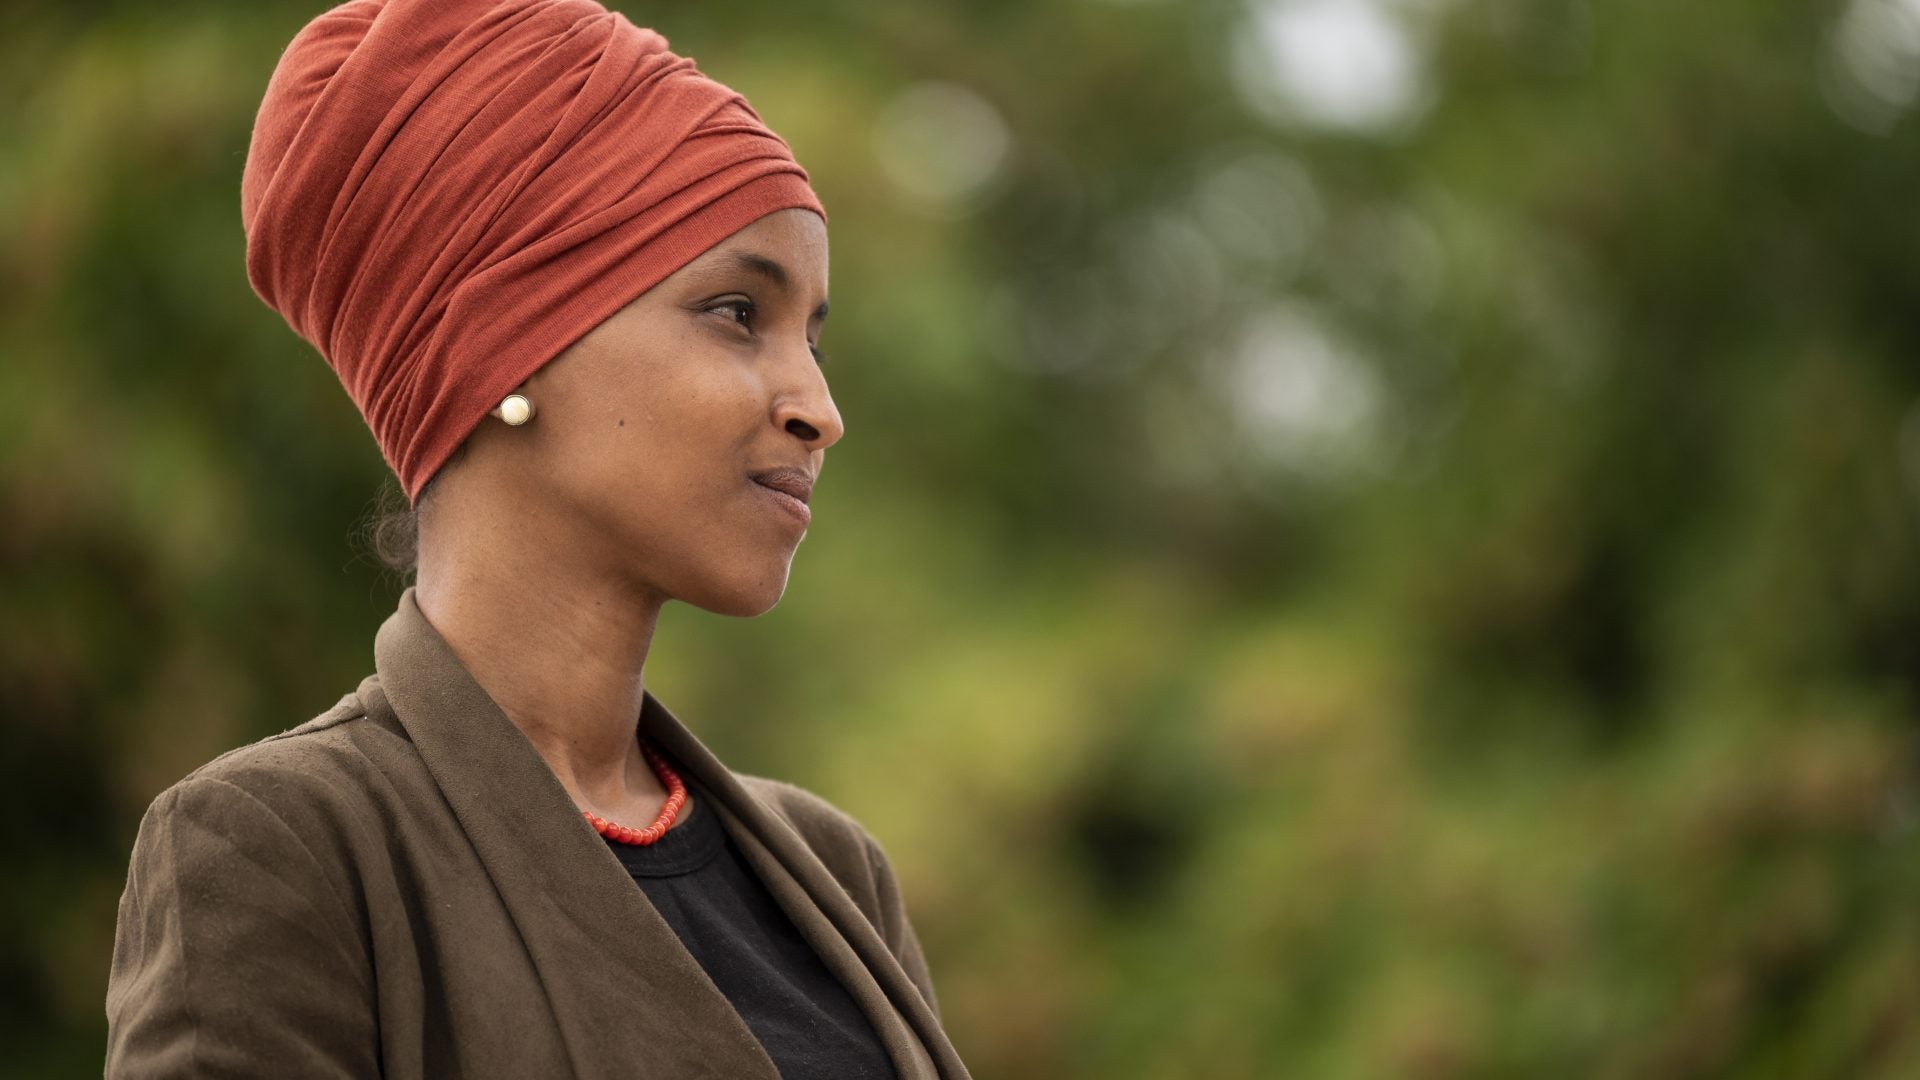 Rep. Ilhan Omar Fires Back After Trump Attack